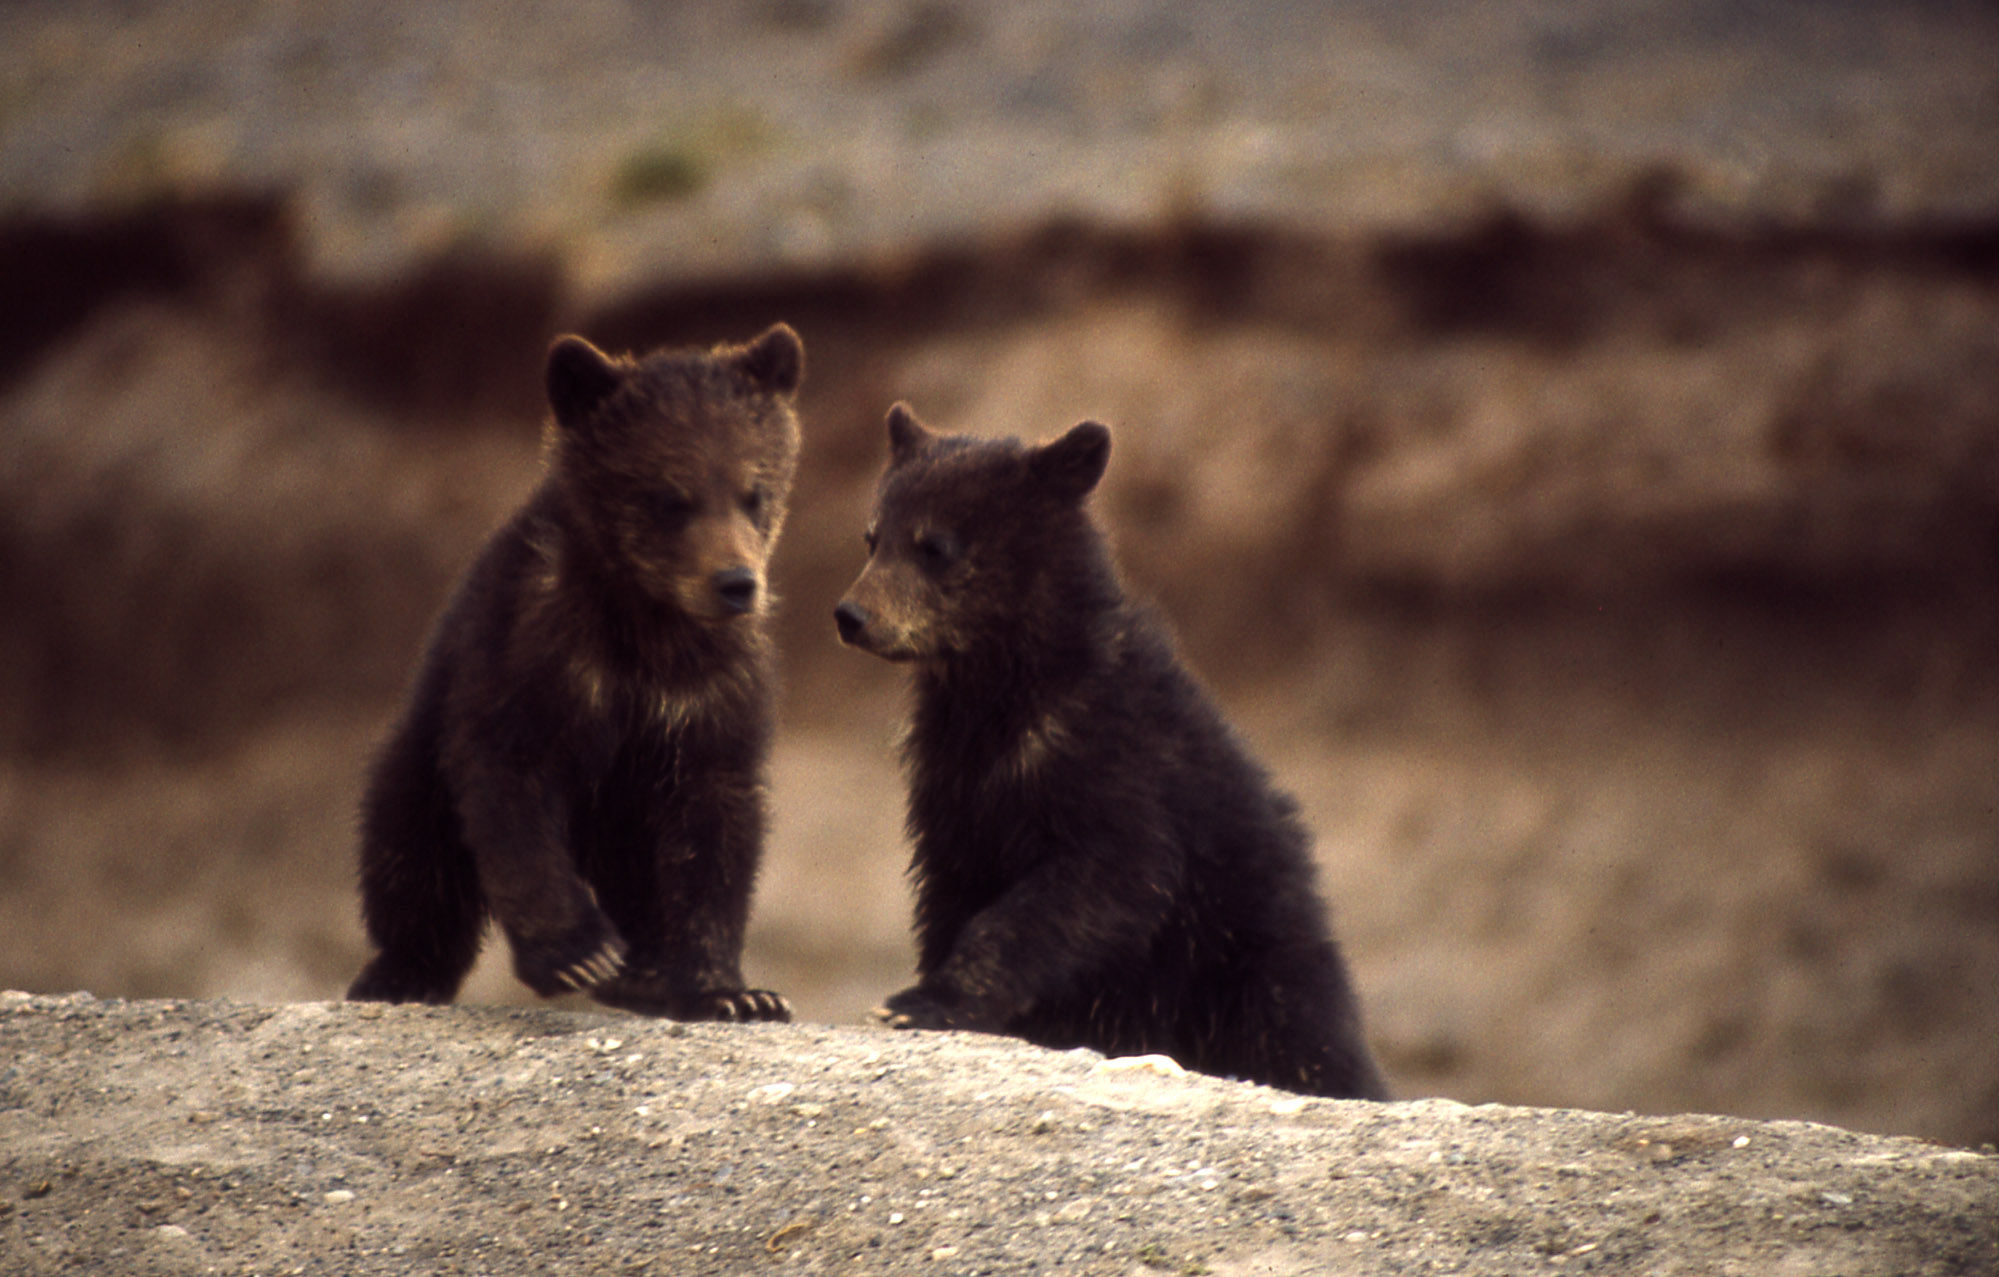 Yellowstone Grizzly Bears – An Update from the Field ...